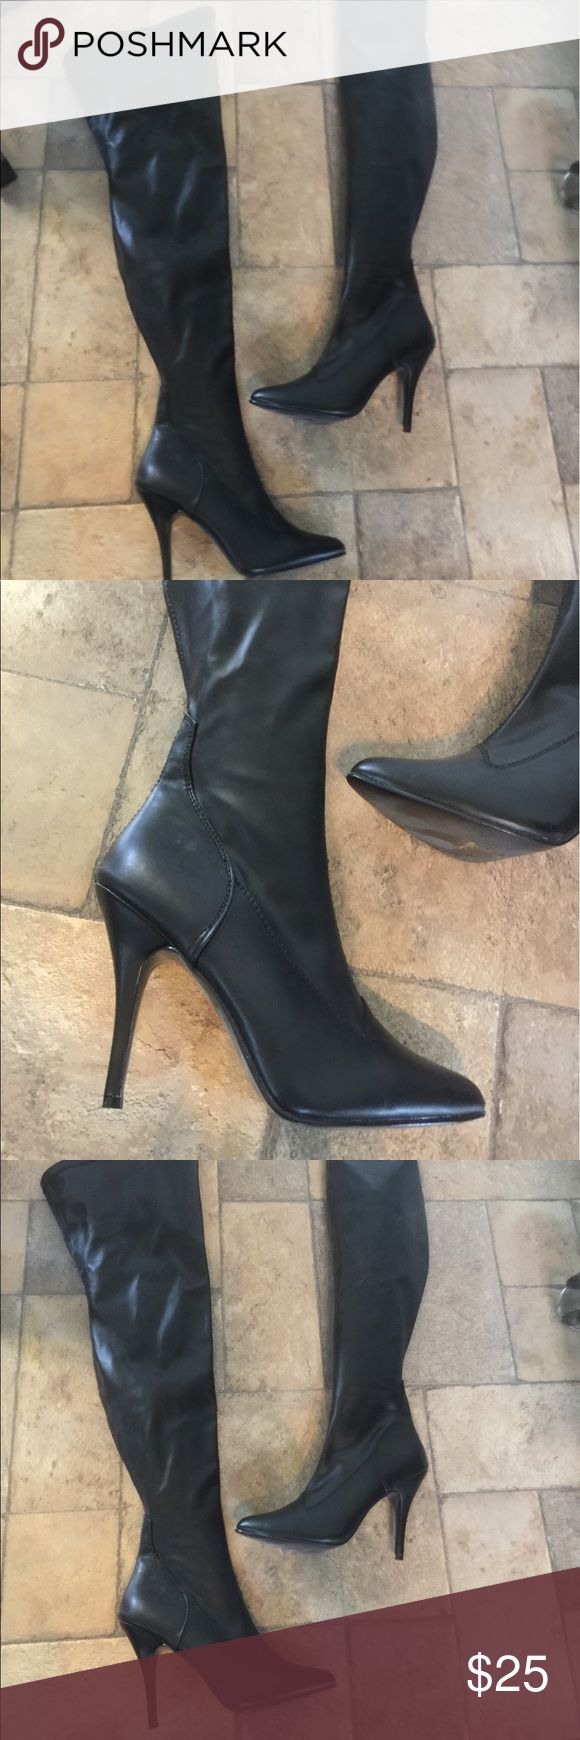 Black thigh High Boots Sz 8 Super sexy thigh high boots Sz 8.Only worn a few times.great condition.inside zippers. pleasers Shoes Heeled Boots